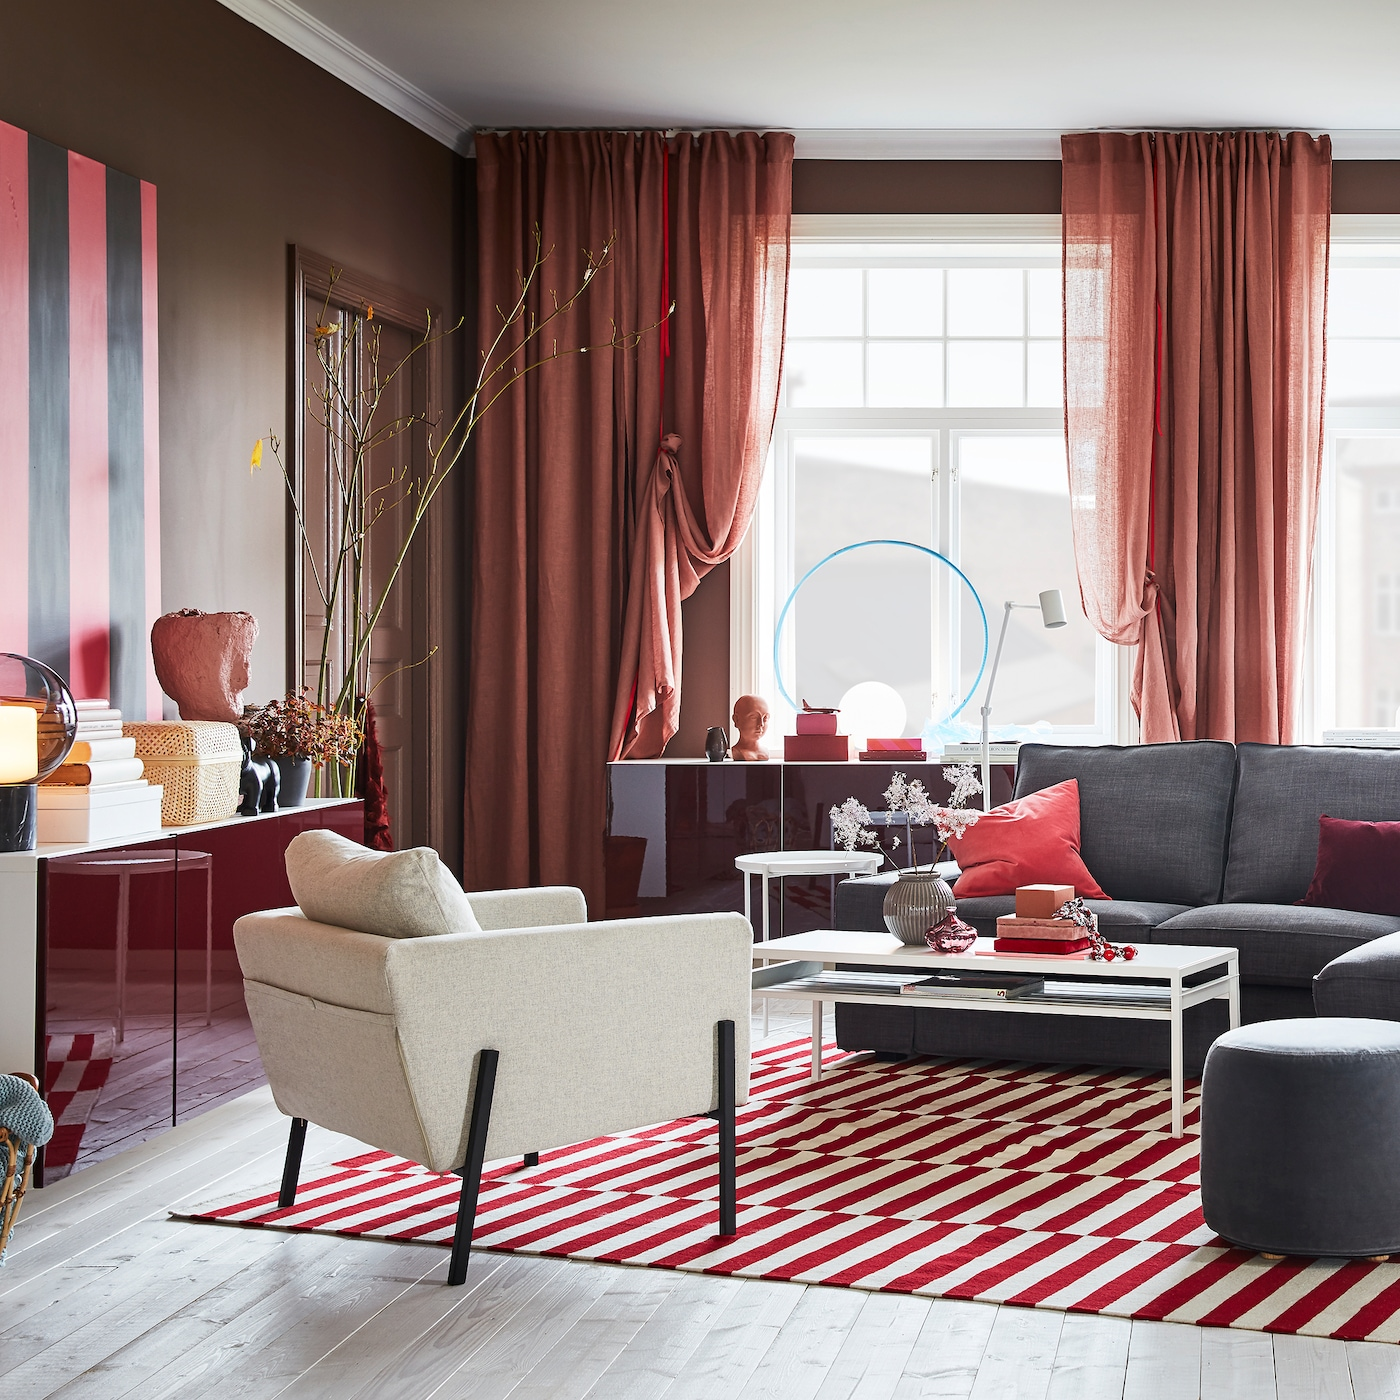 Link to 'Express yourself' room - image of a living room with pink-brown curtains, a red/white rug, and a grey sofa.